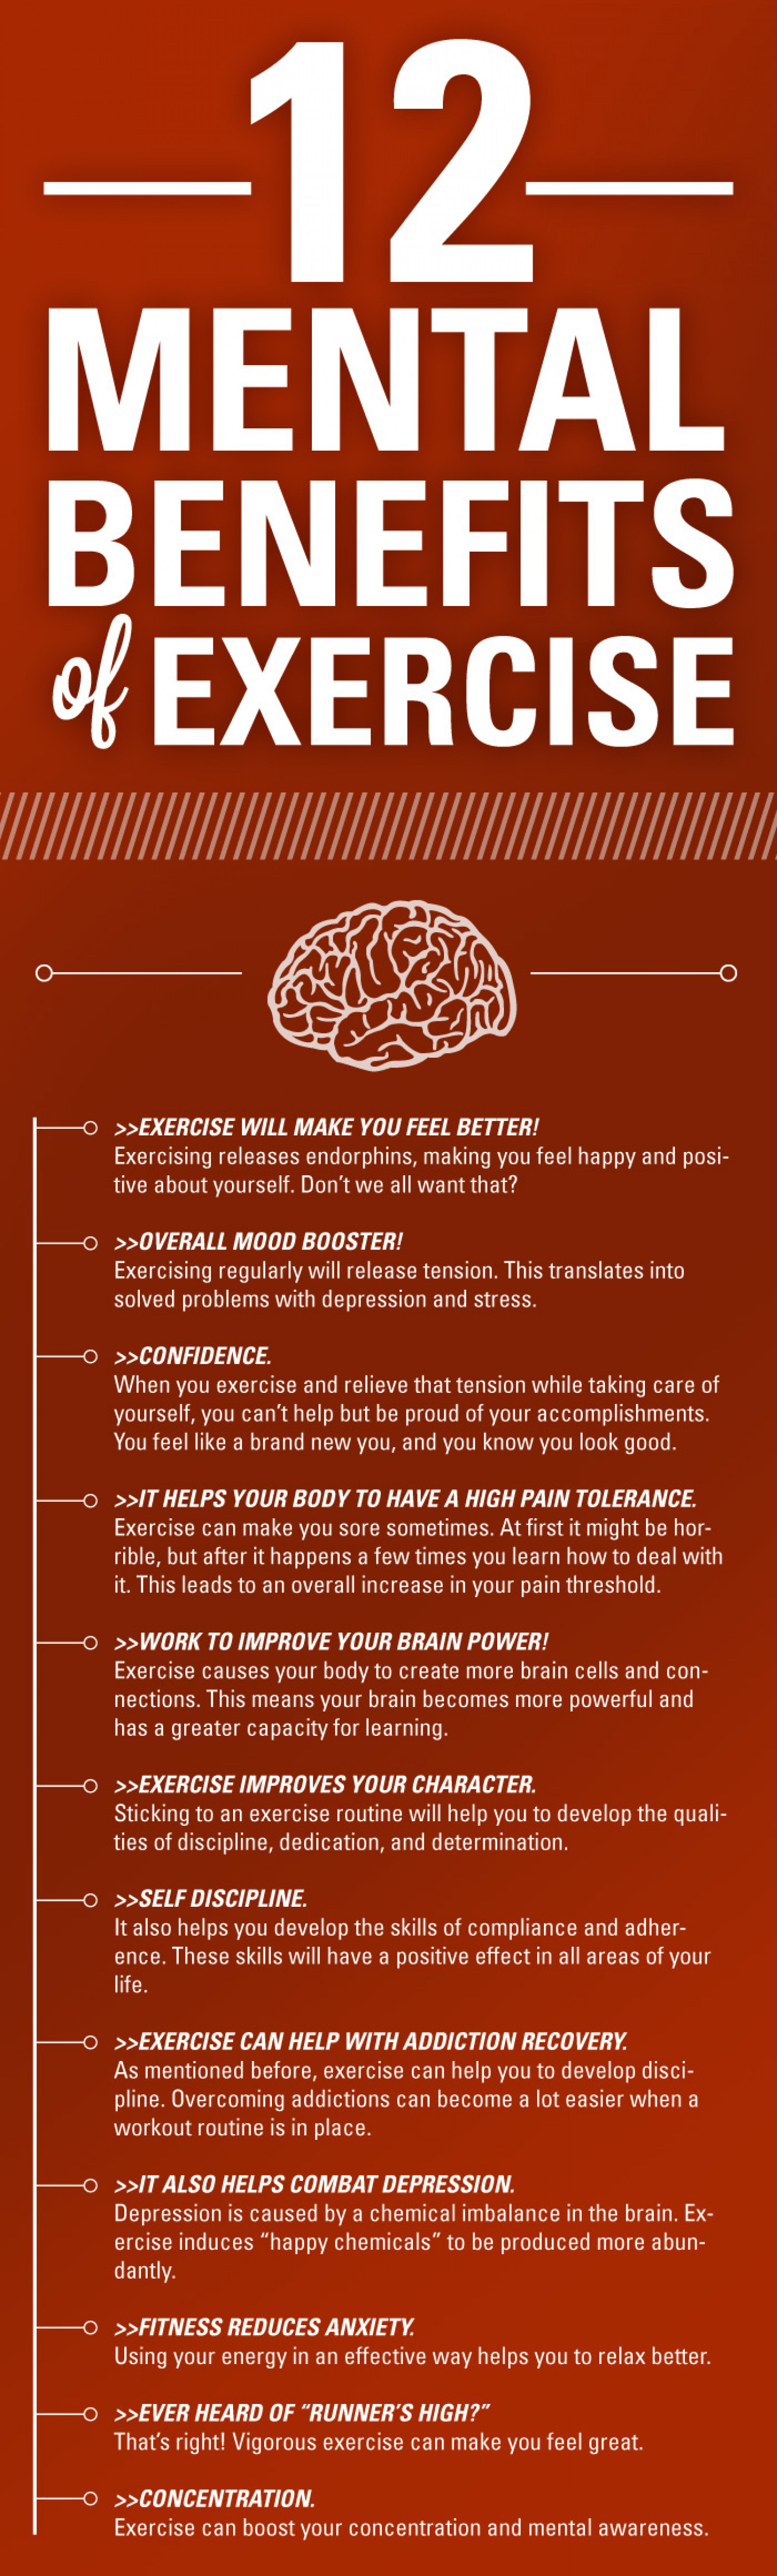 12 Mental Benefits of Exercise Infographic